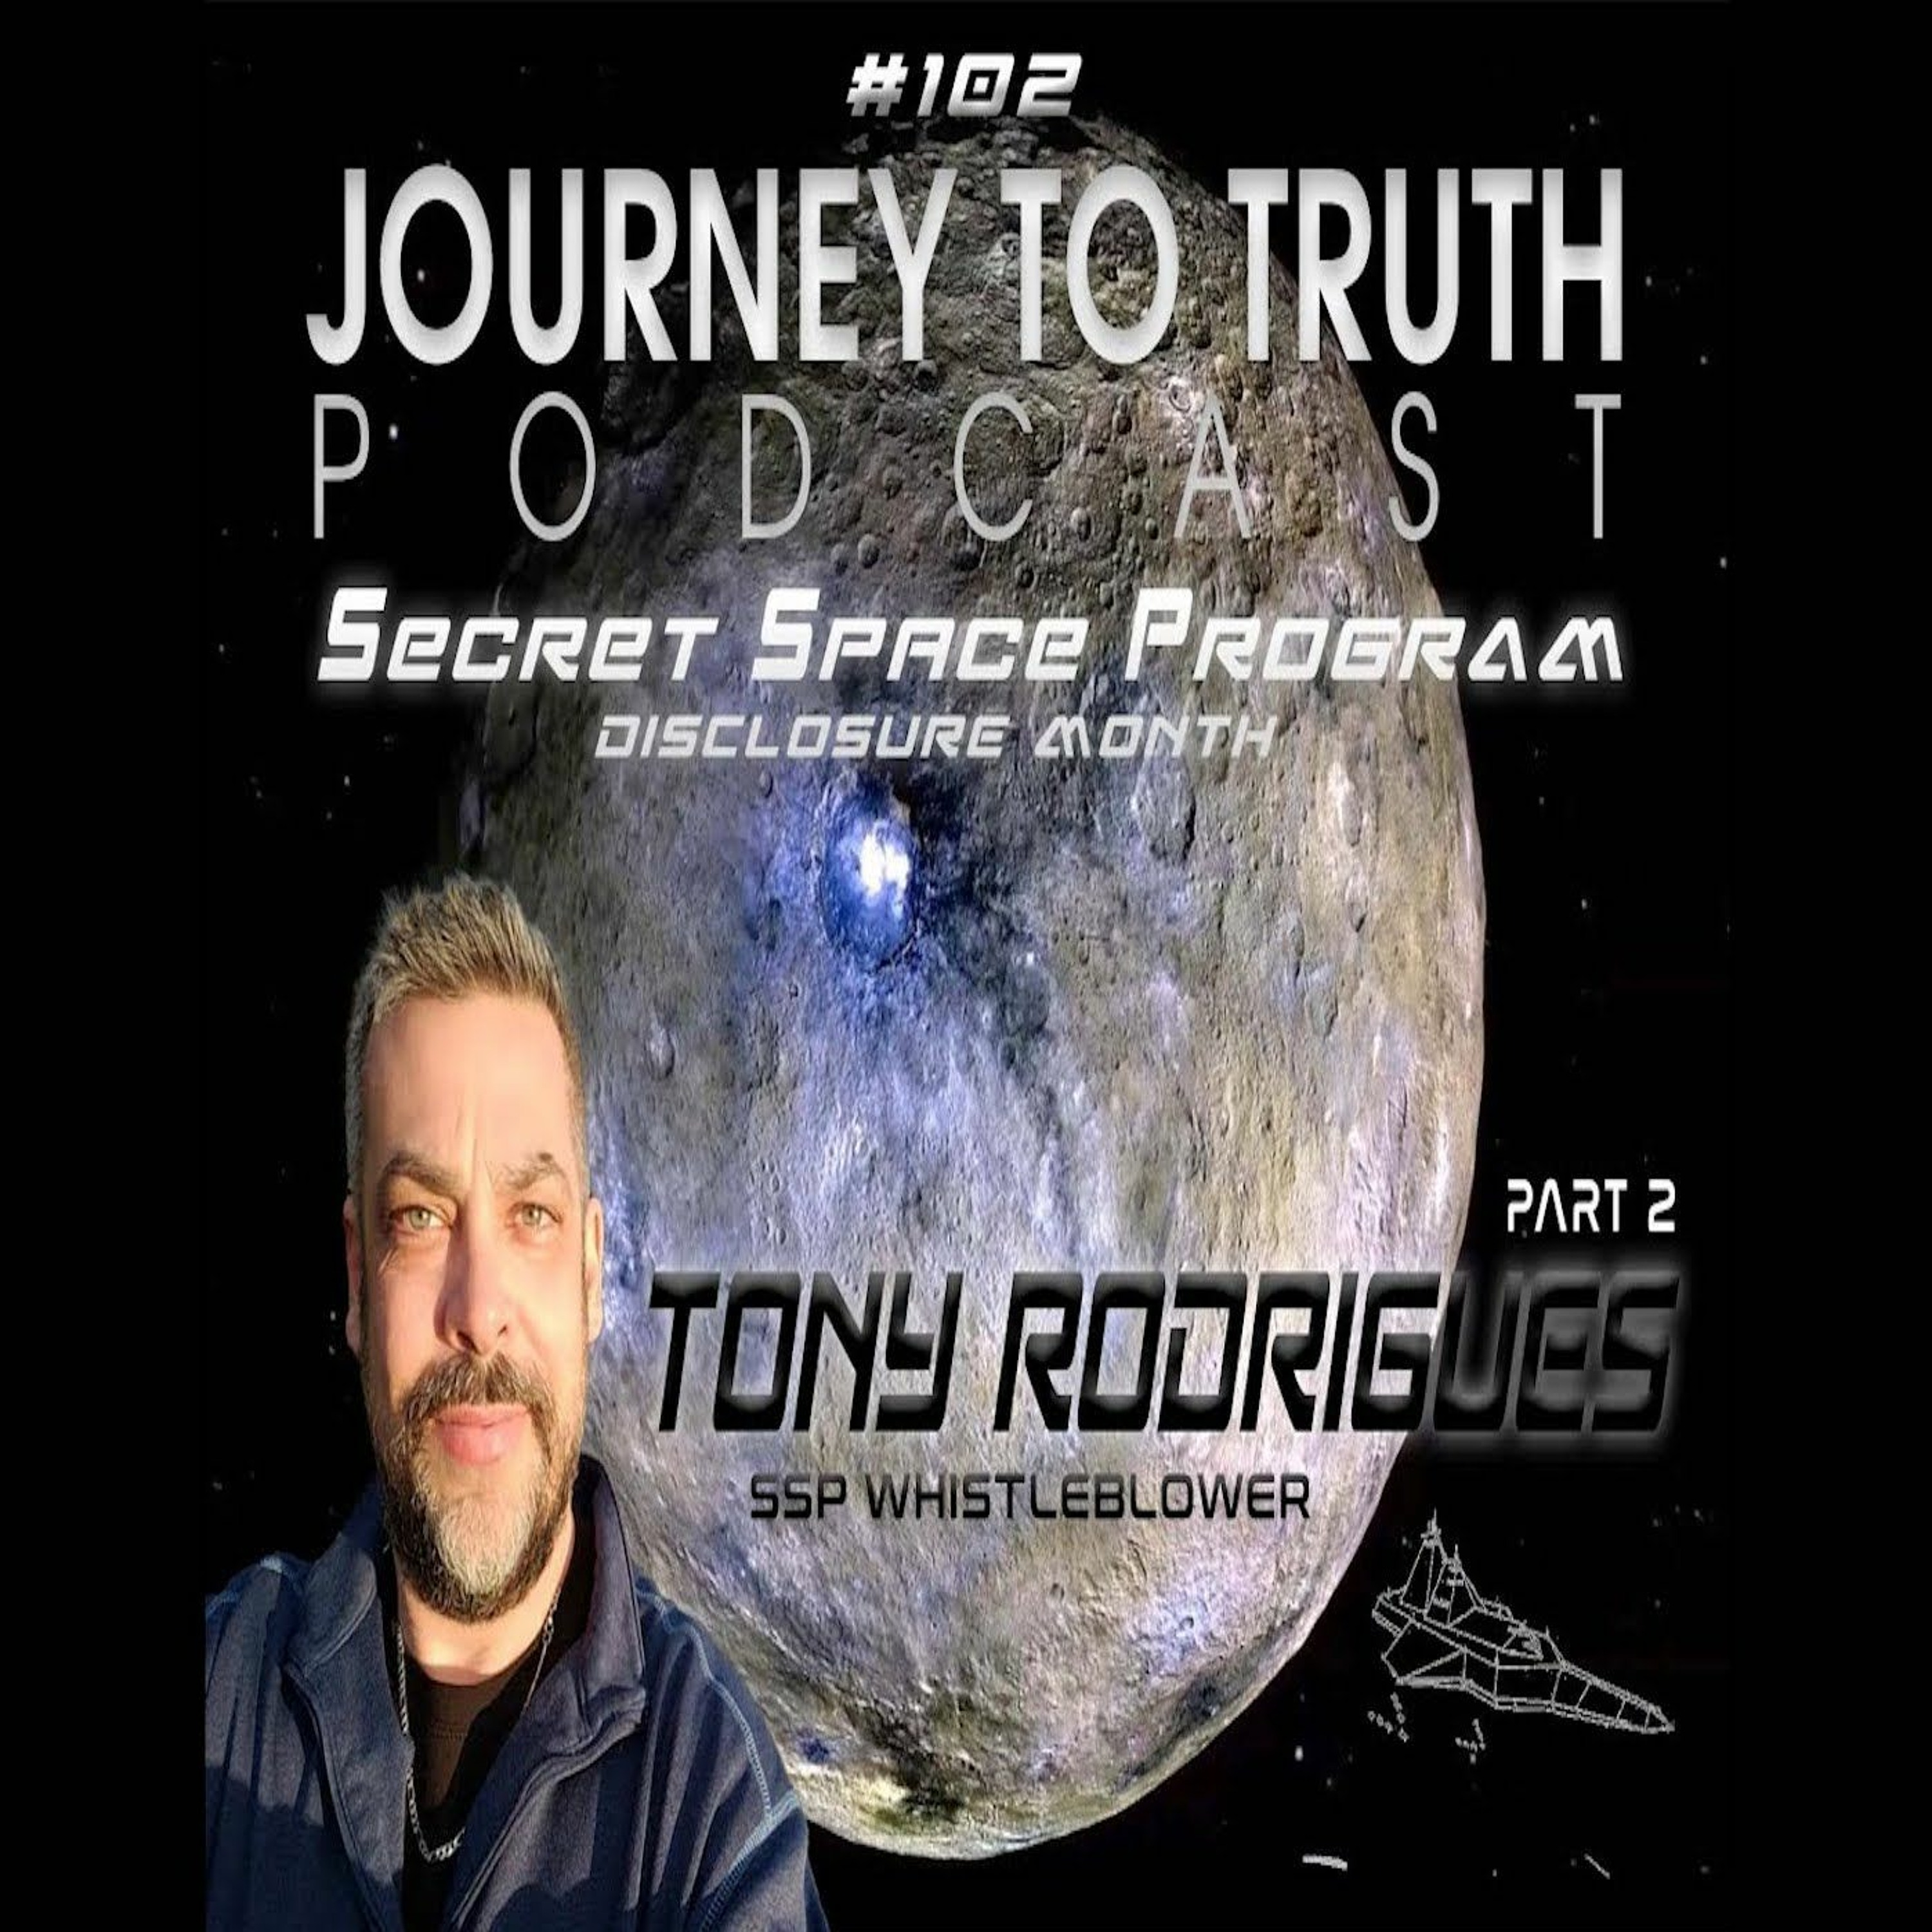 EP 102 - (Part 2) Tony Rodrigues - Life In The Secret Space Program - Testimony